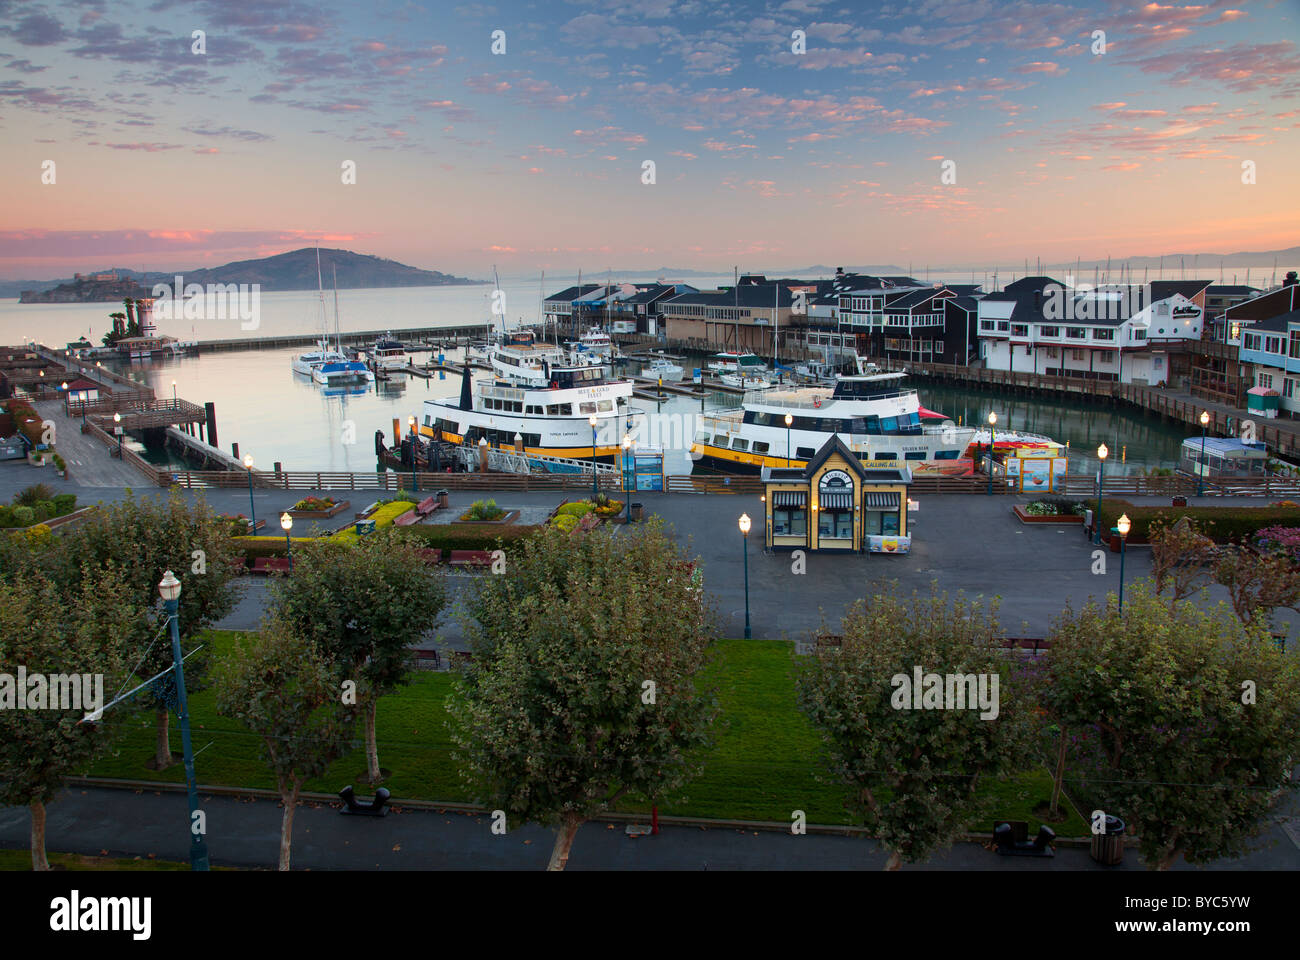 Fisherman's Wharf and Pier 39, San Francisco, CA - Stock Image